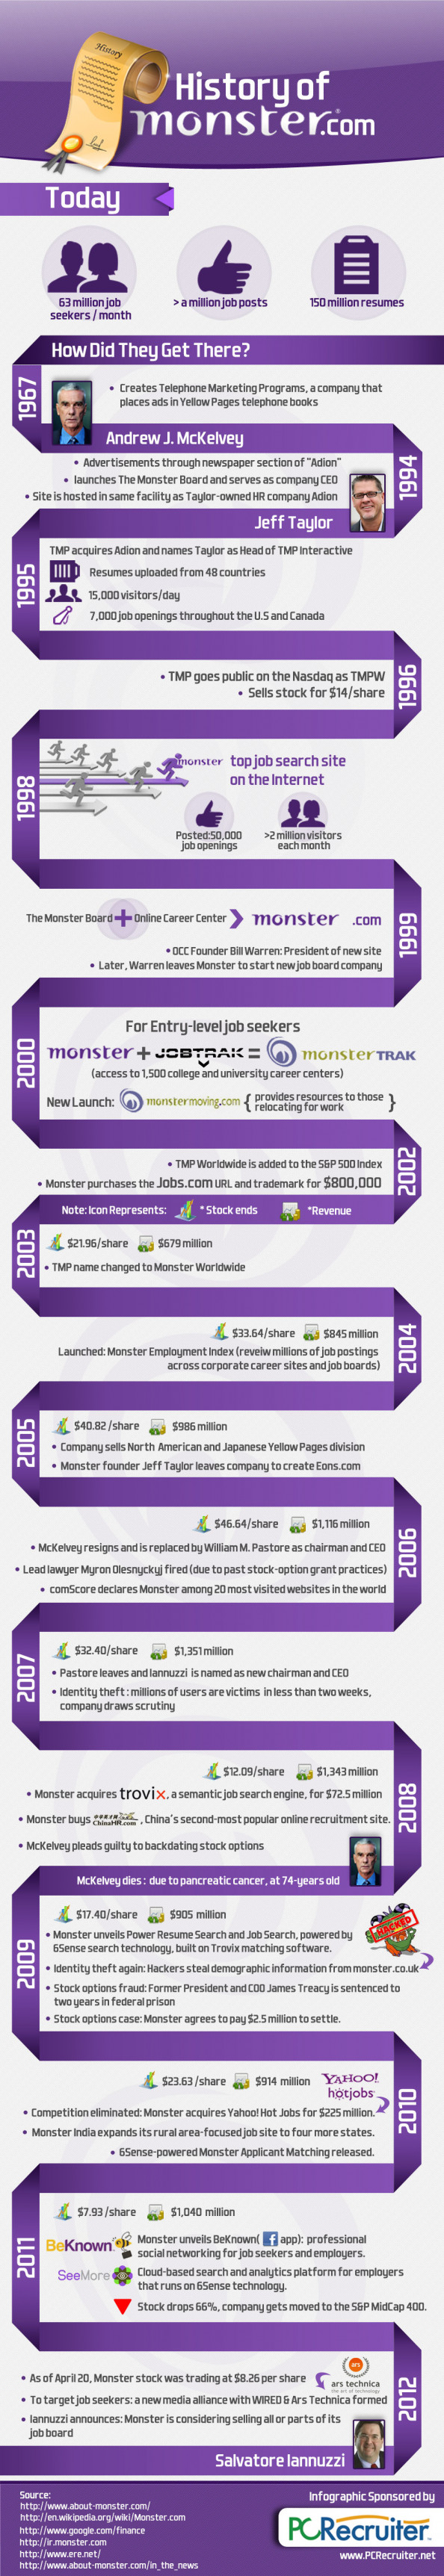 History of Monster.com 1967 - 2012 Infographic